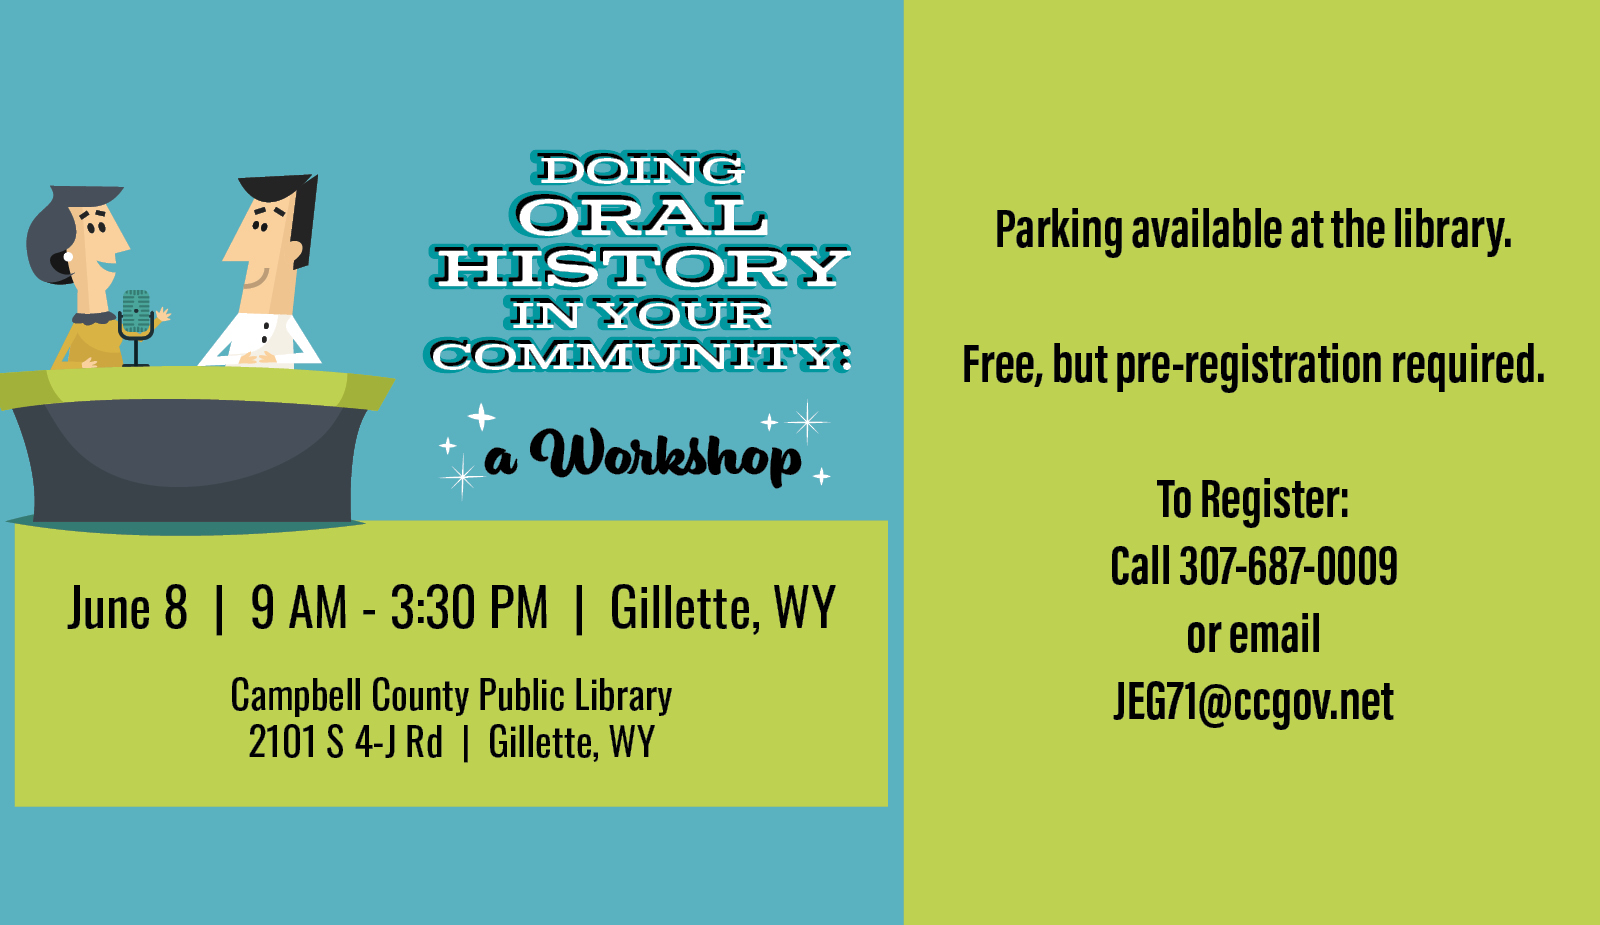 Oral History In Your Community - A Workshop